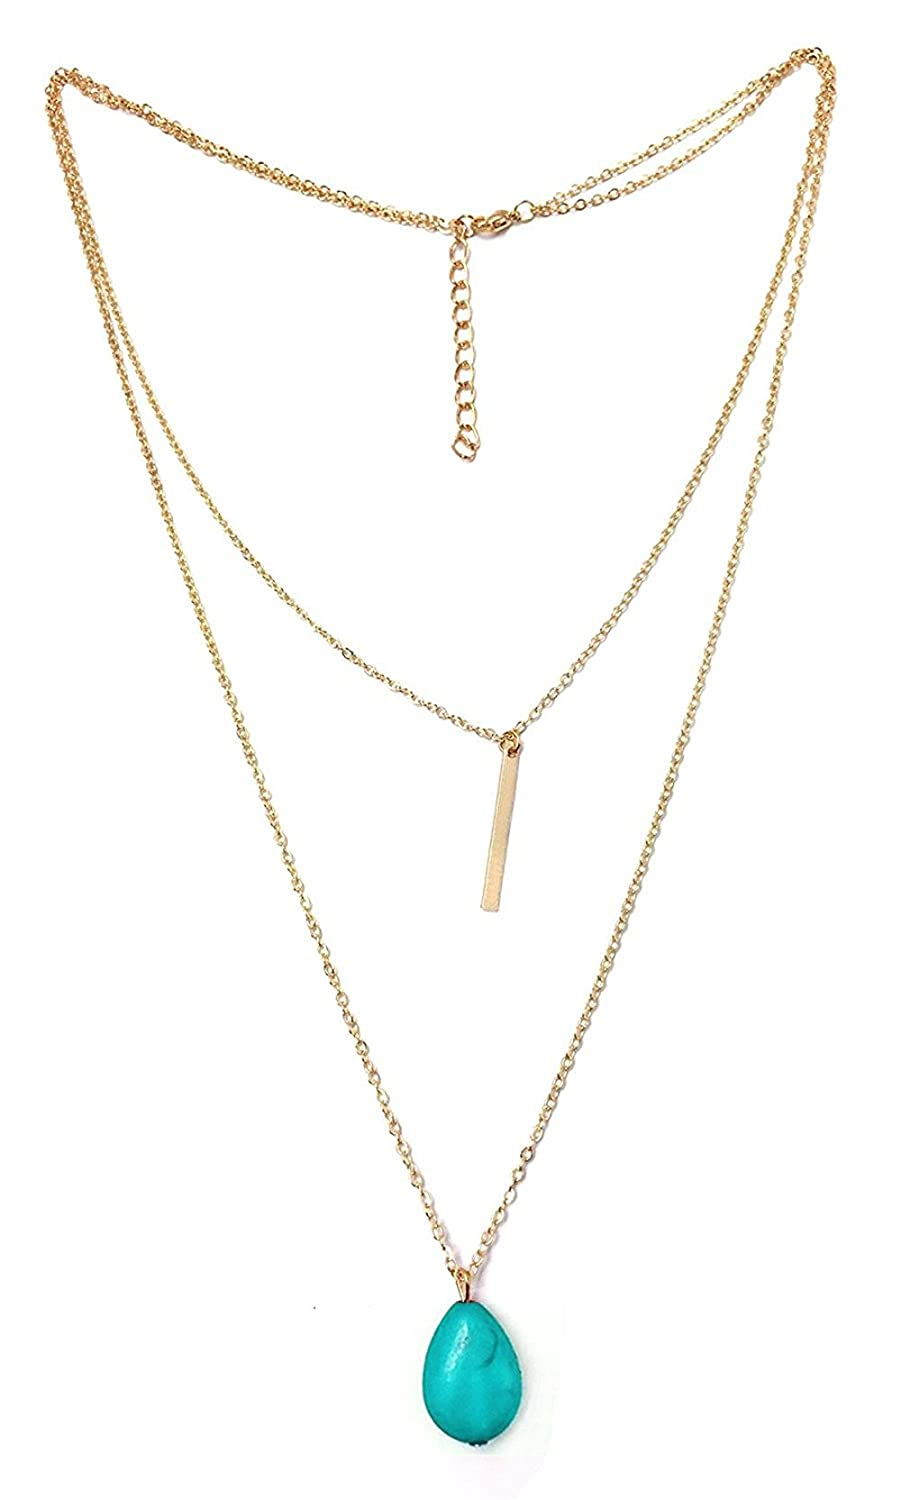 BODYA Womens Exquisite silver gold plated Double Layers Turquoise Long Pendant Necklace 30 32 cable chain JW3690